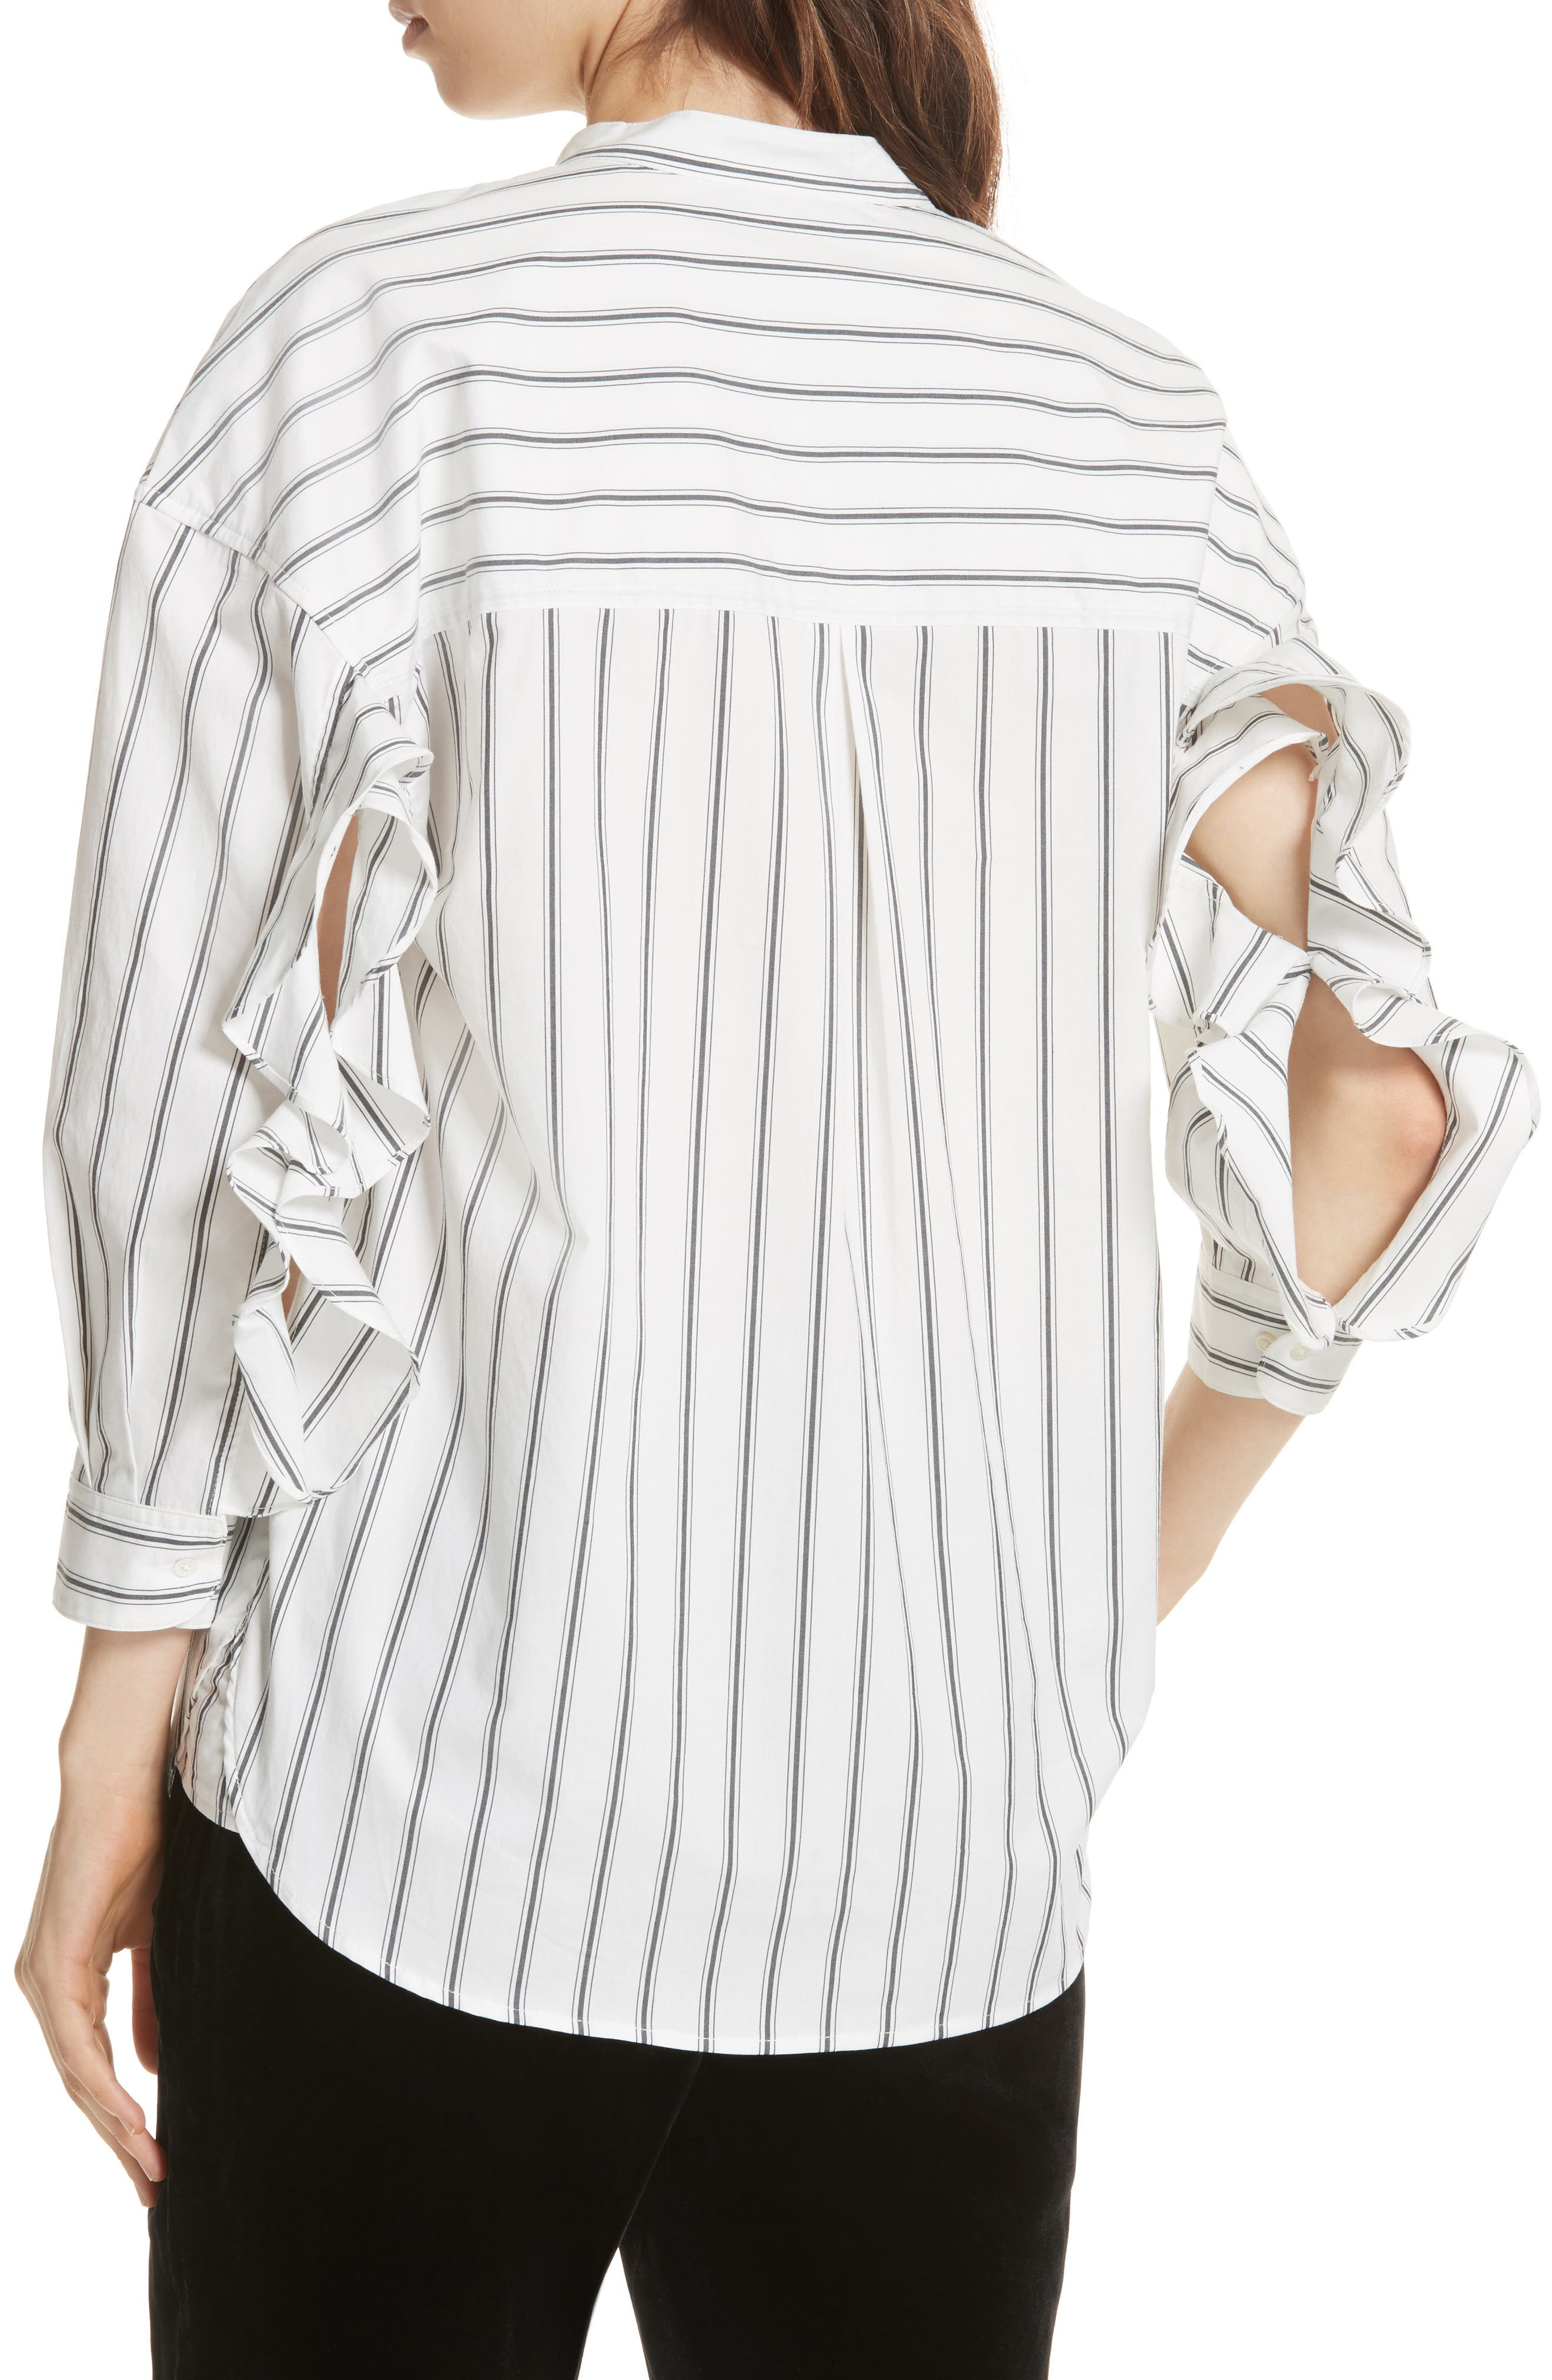 Poni Stripe Shirt,                             Alternate thumbnail 4, color,                             120